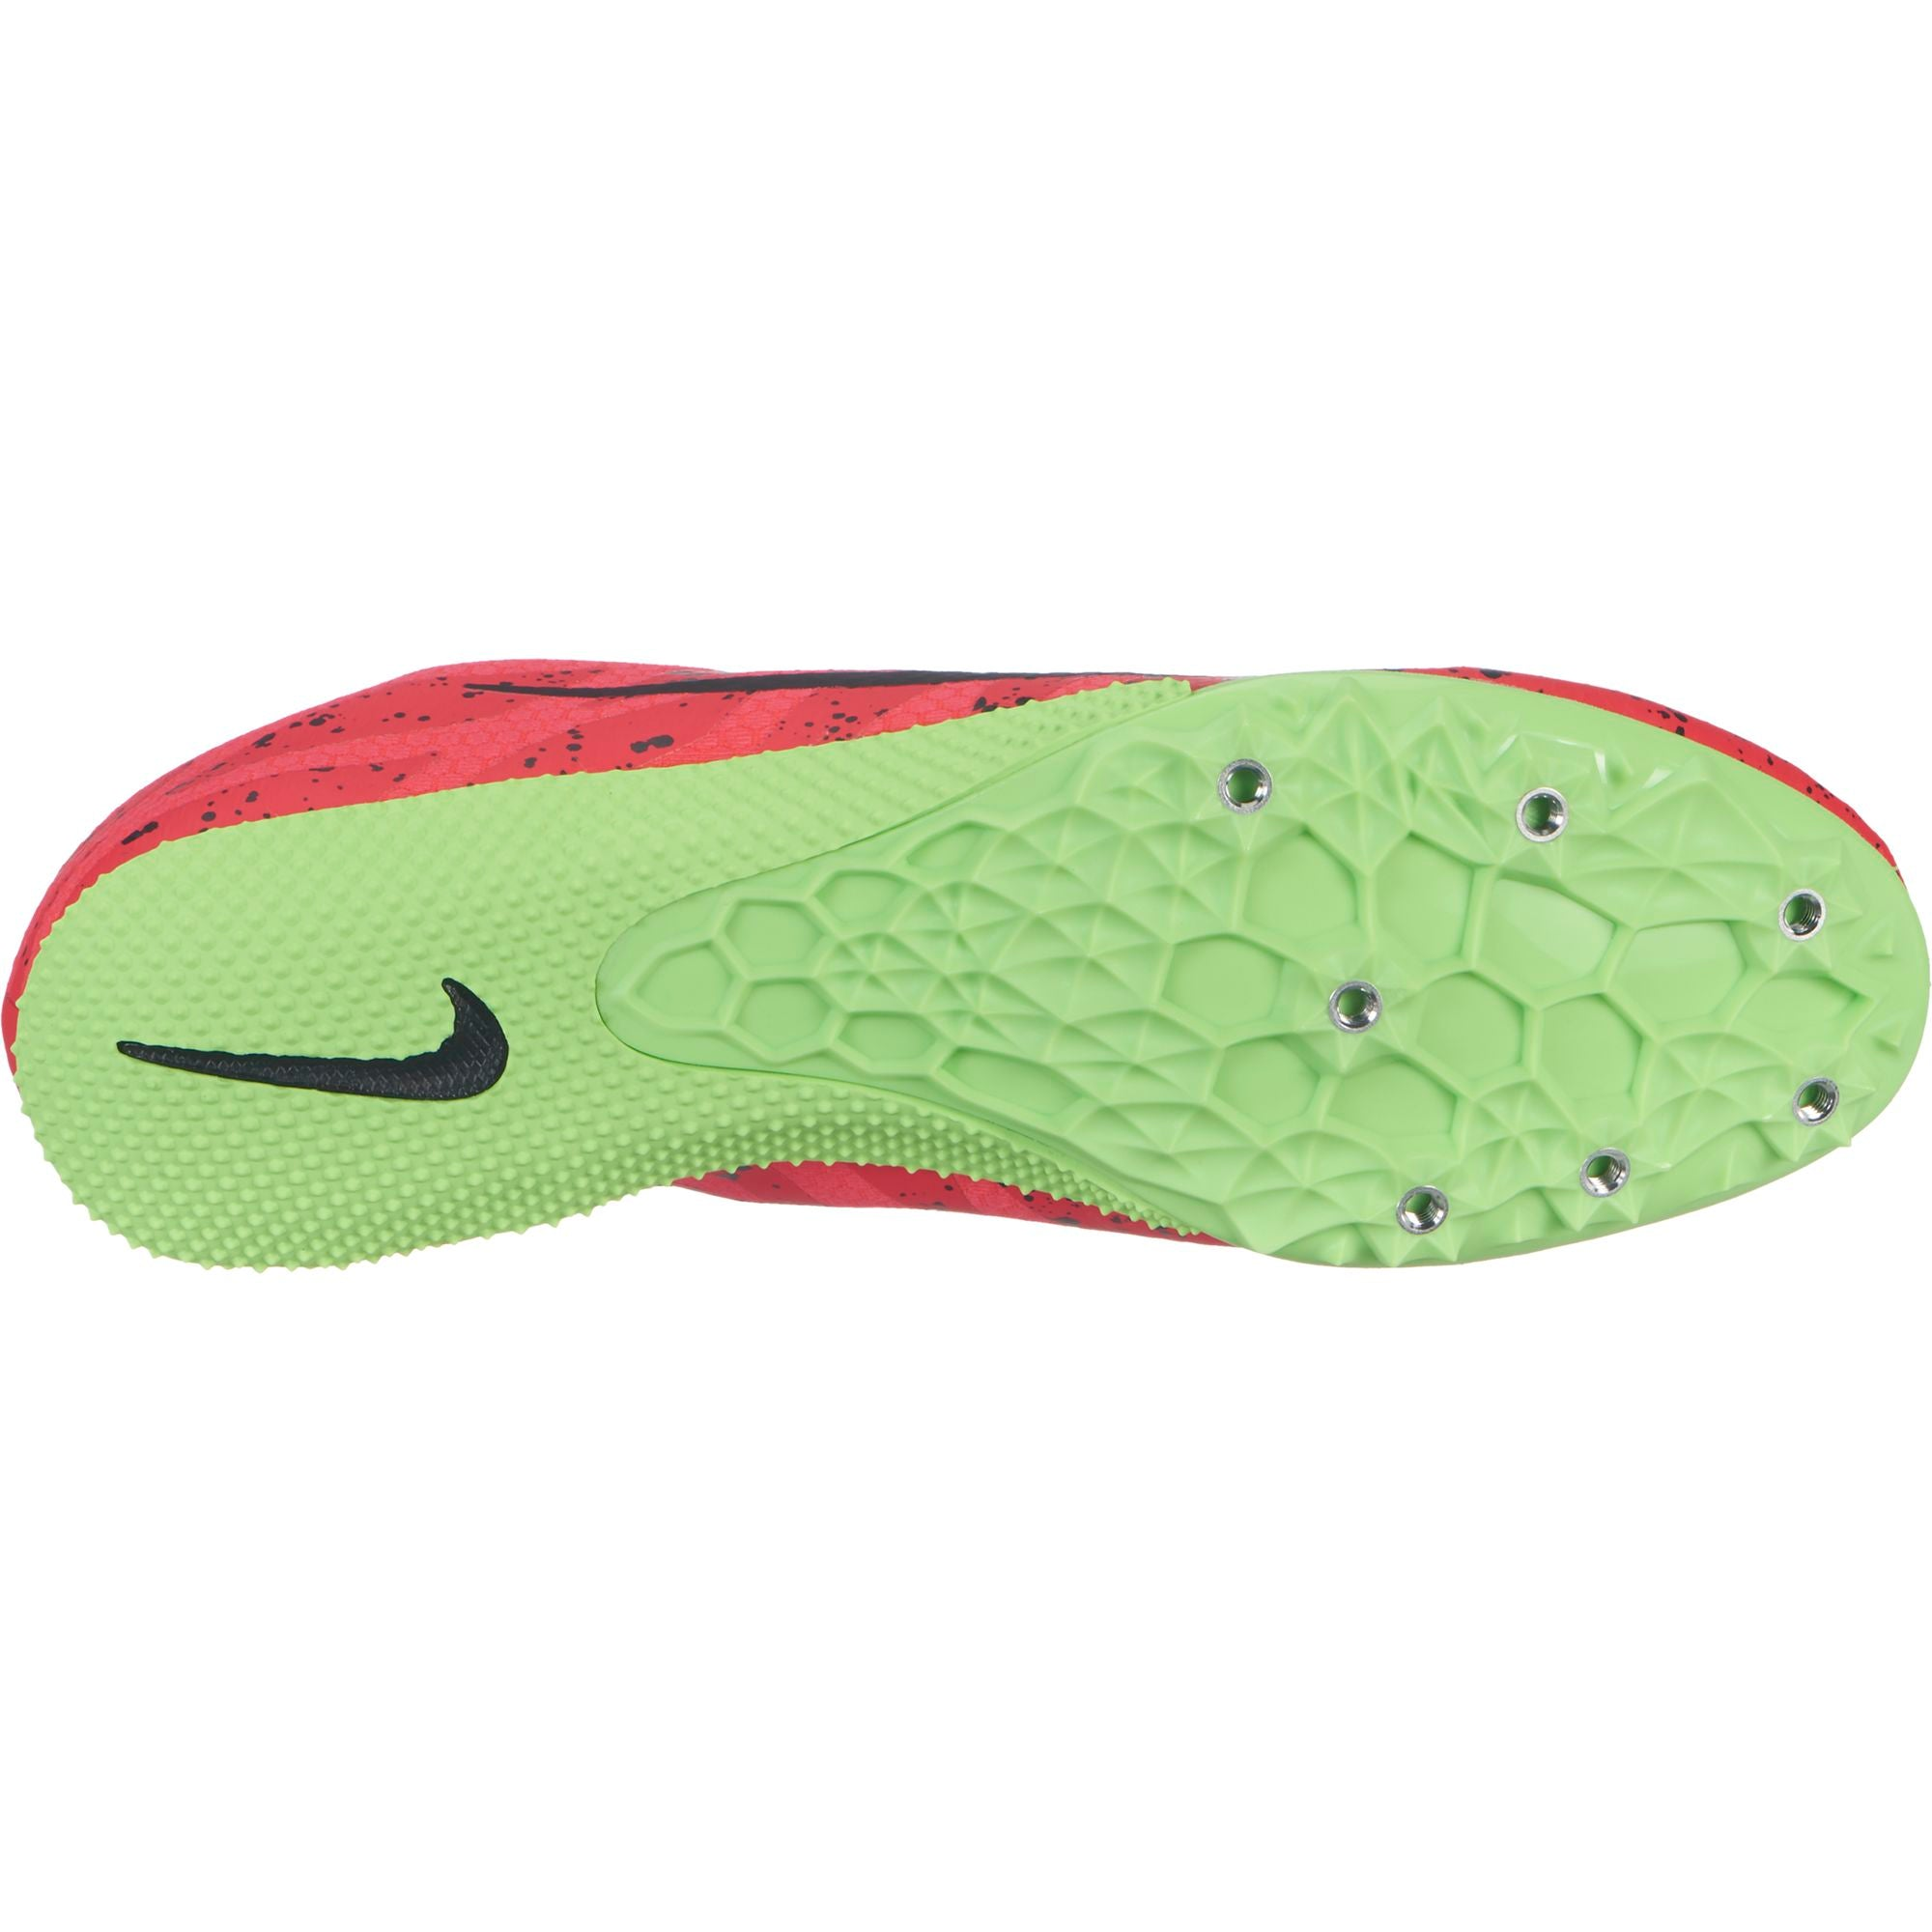 cc9cc666e063 Unisex Zoom Rival S 9 Track Spike - Red Orbit Black Lime Blast ...